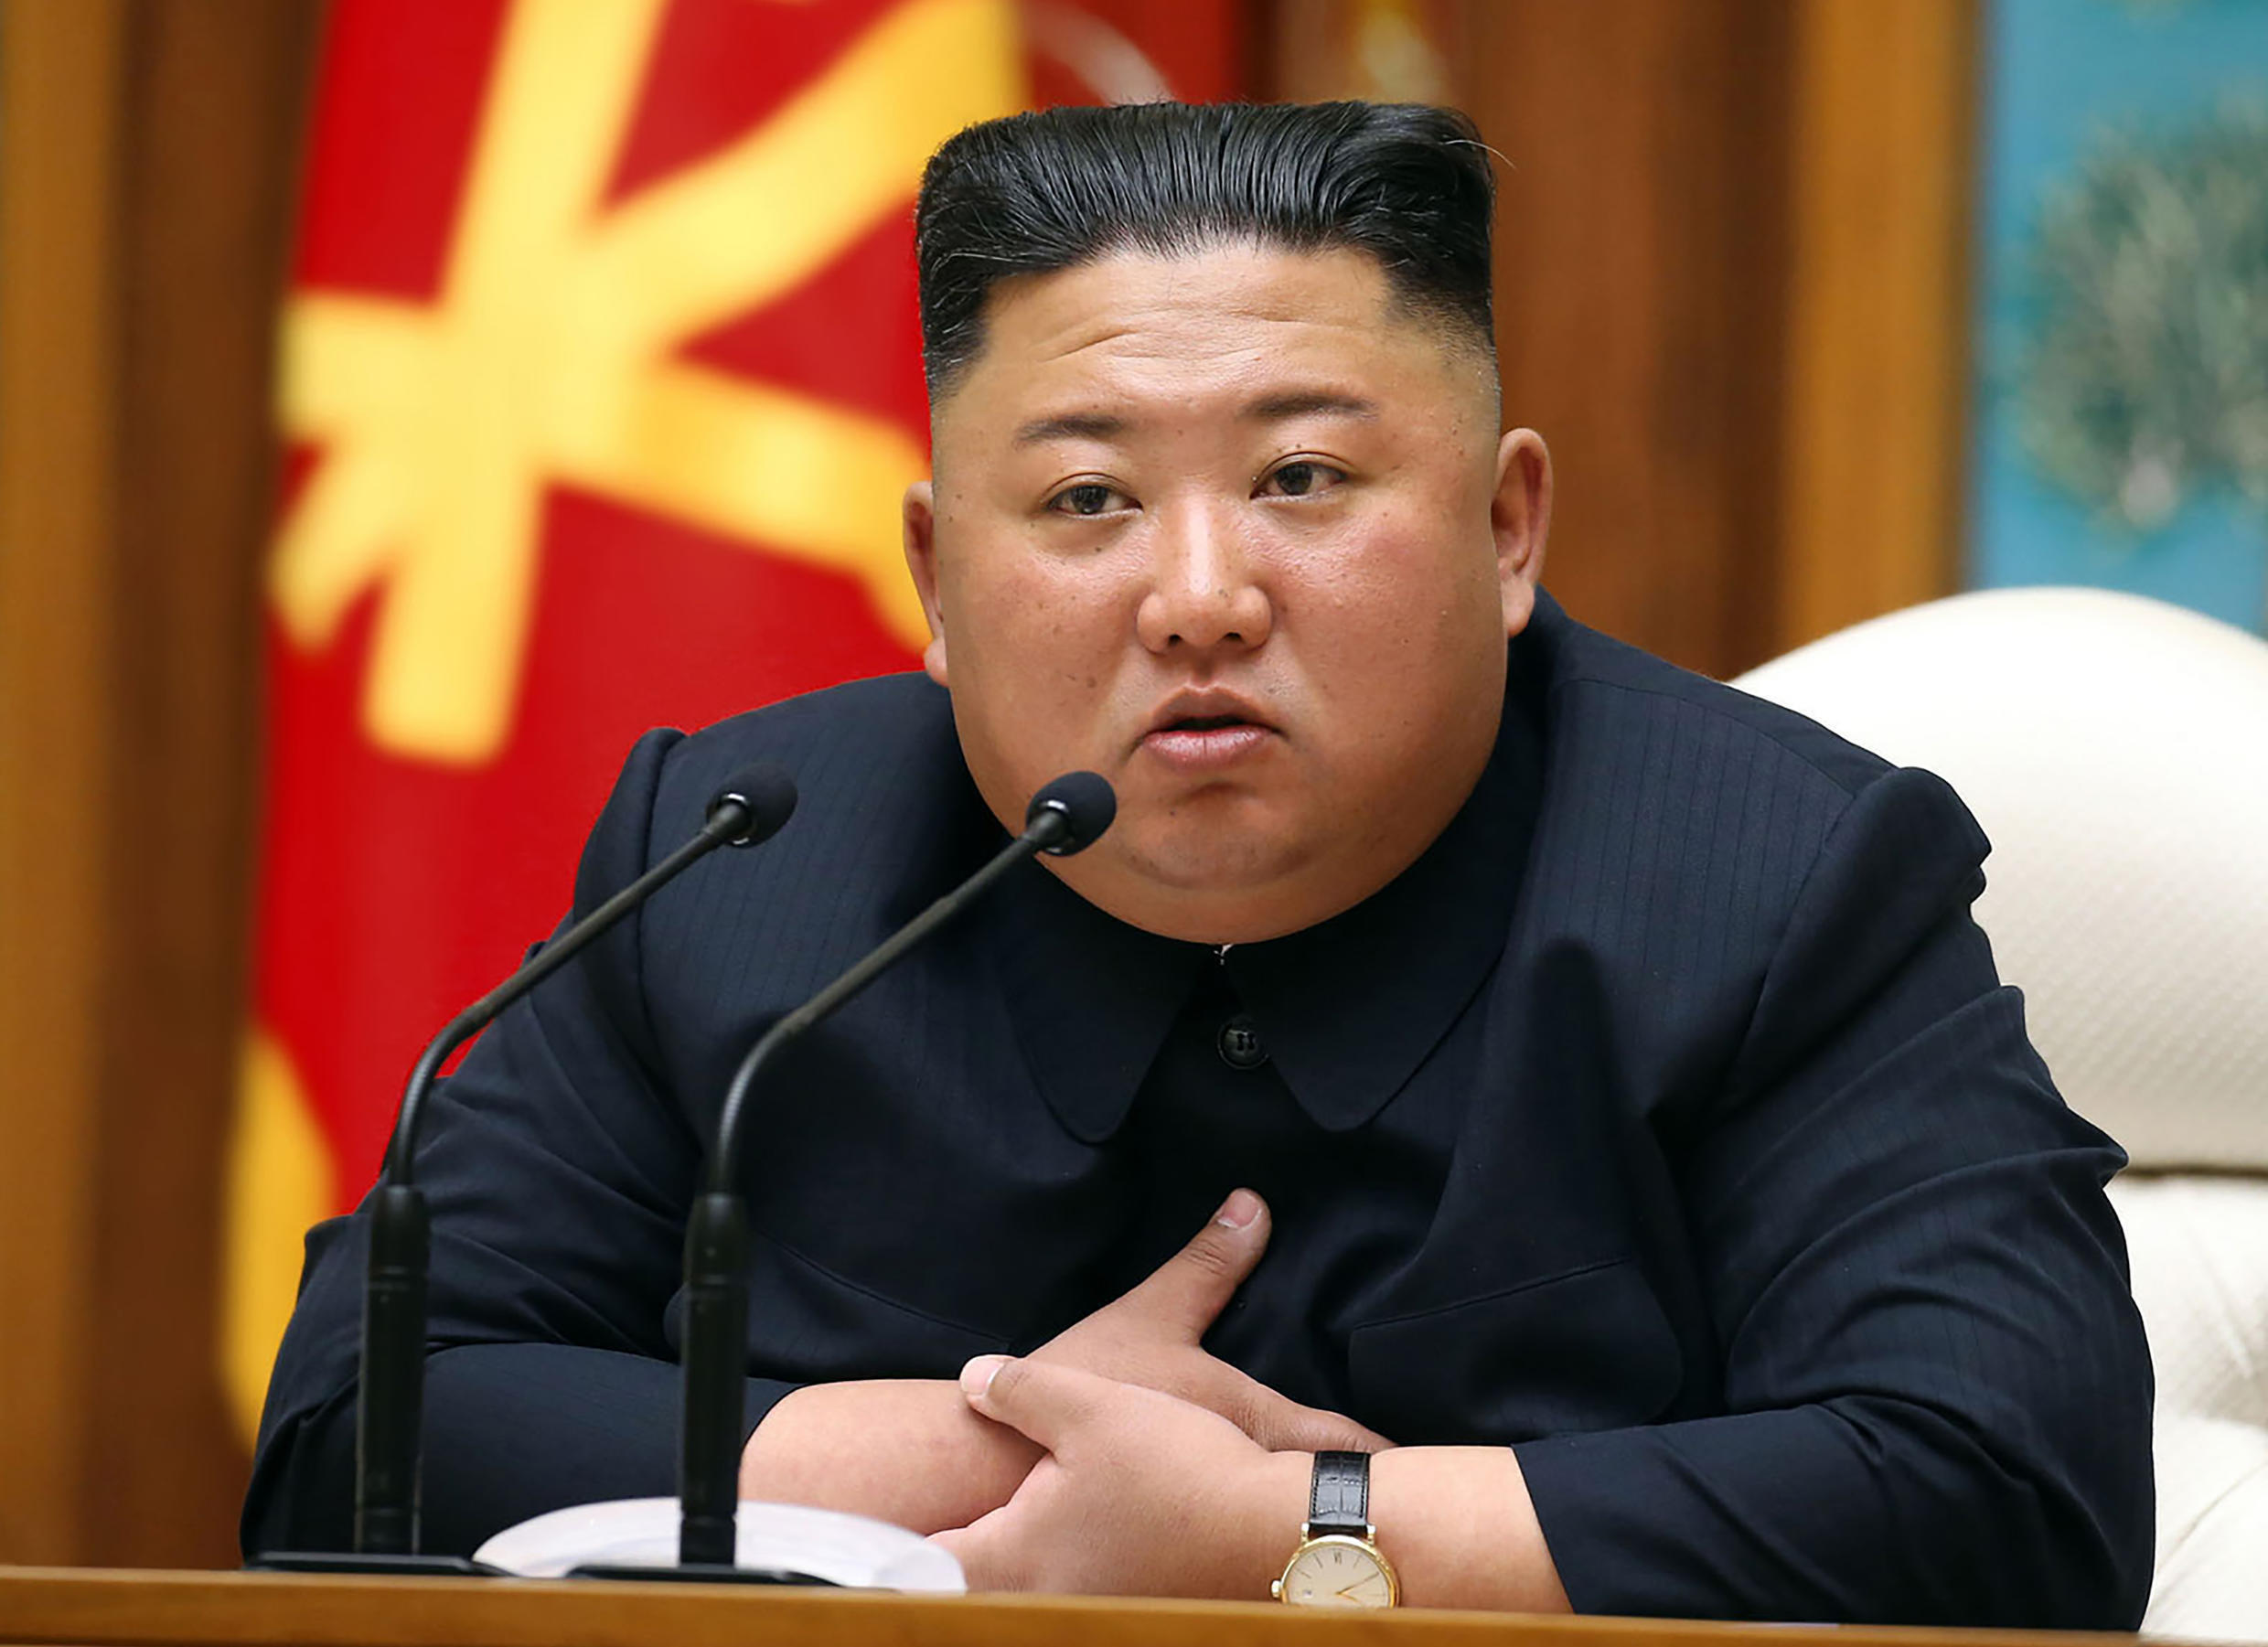 Kim Jong Un's health is frequently the subject of speculation, but little concrete is known about the secretive leader